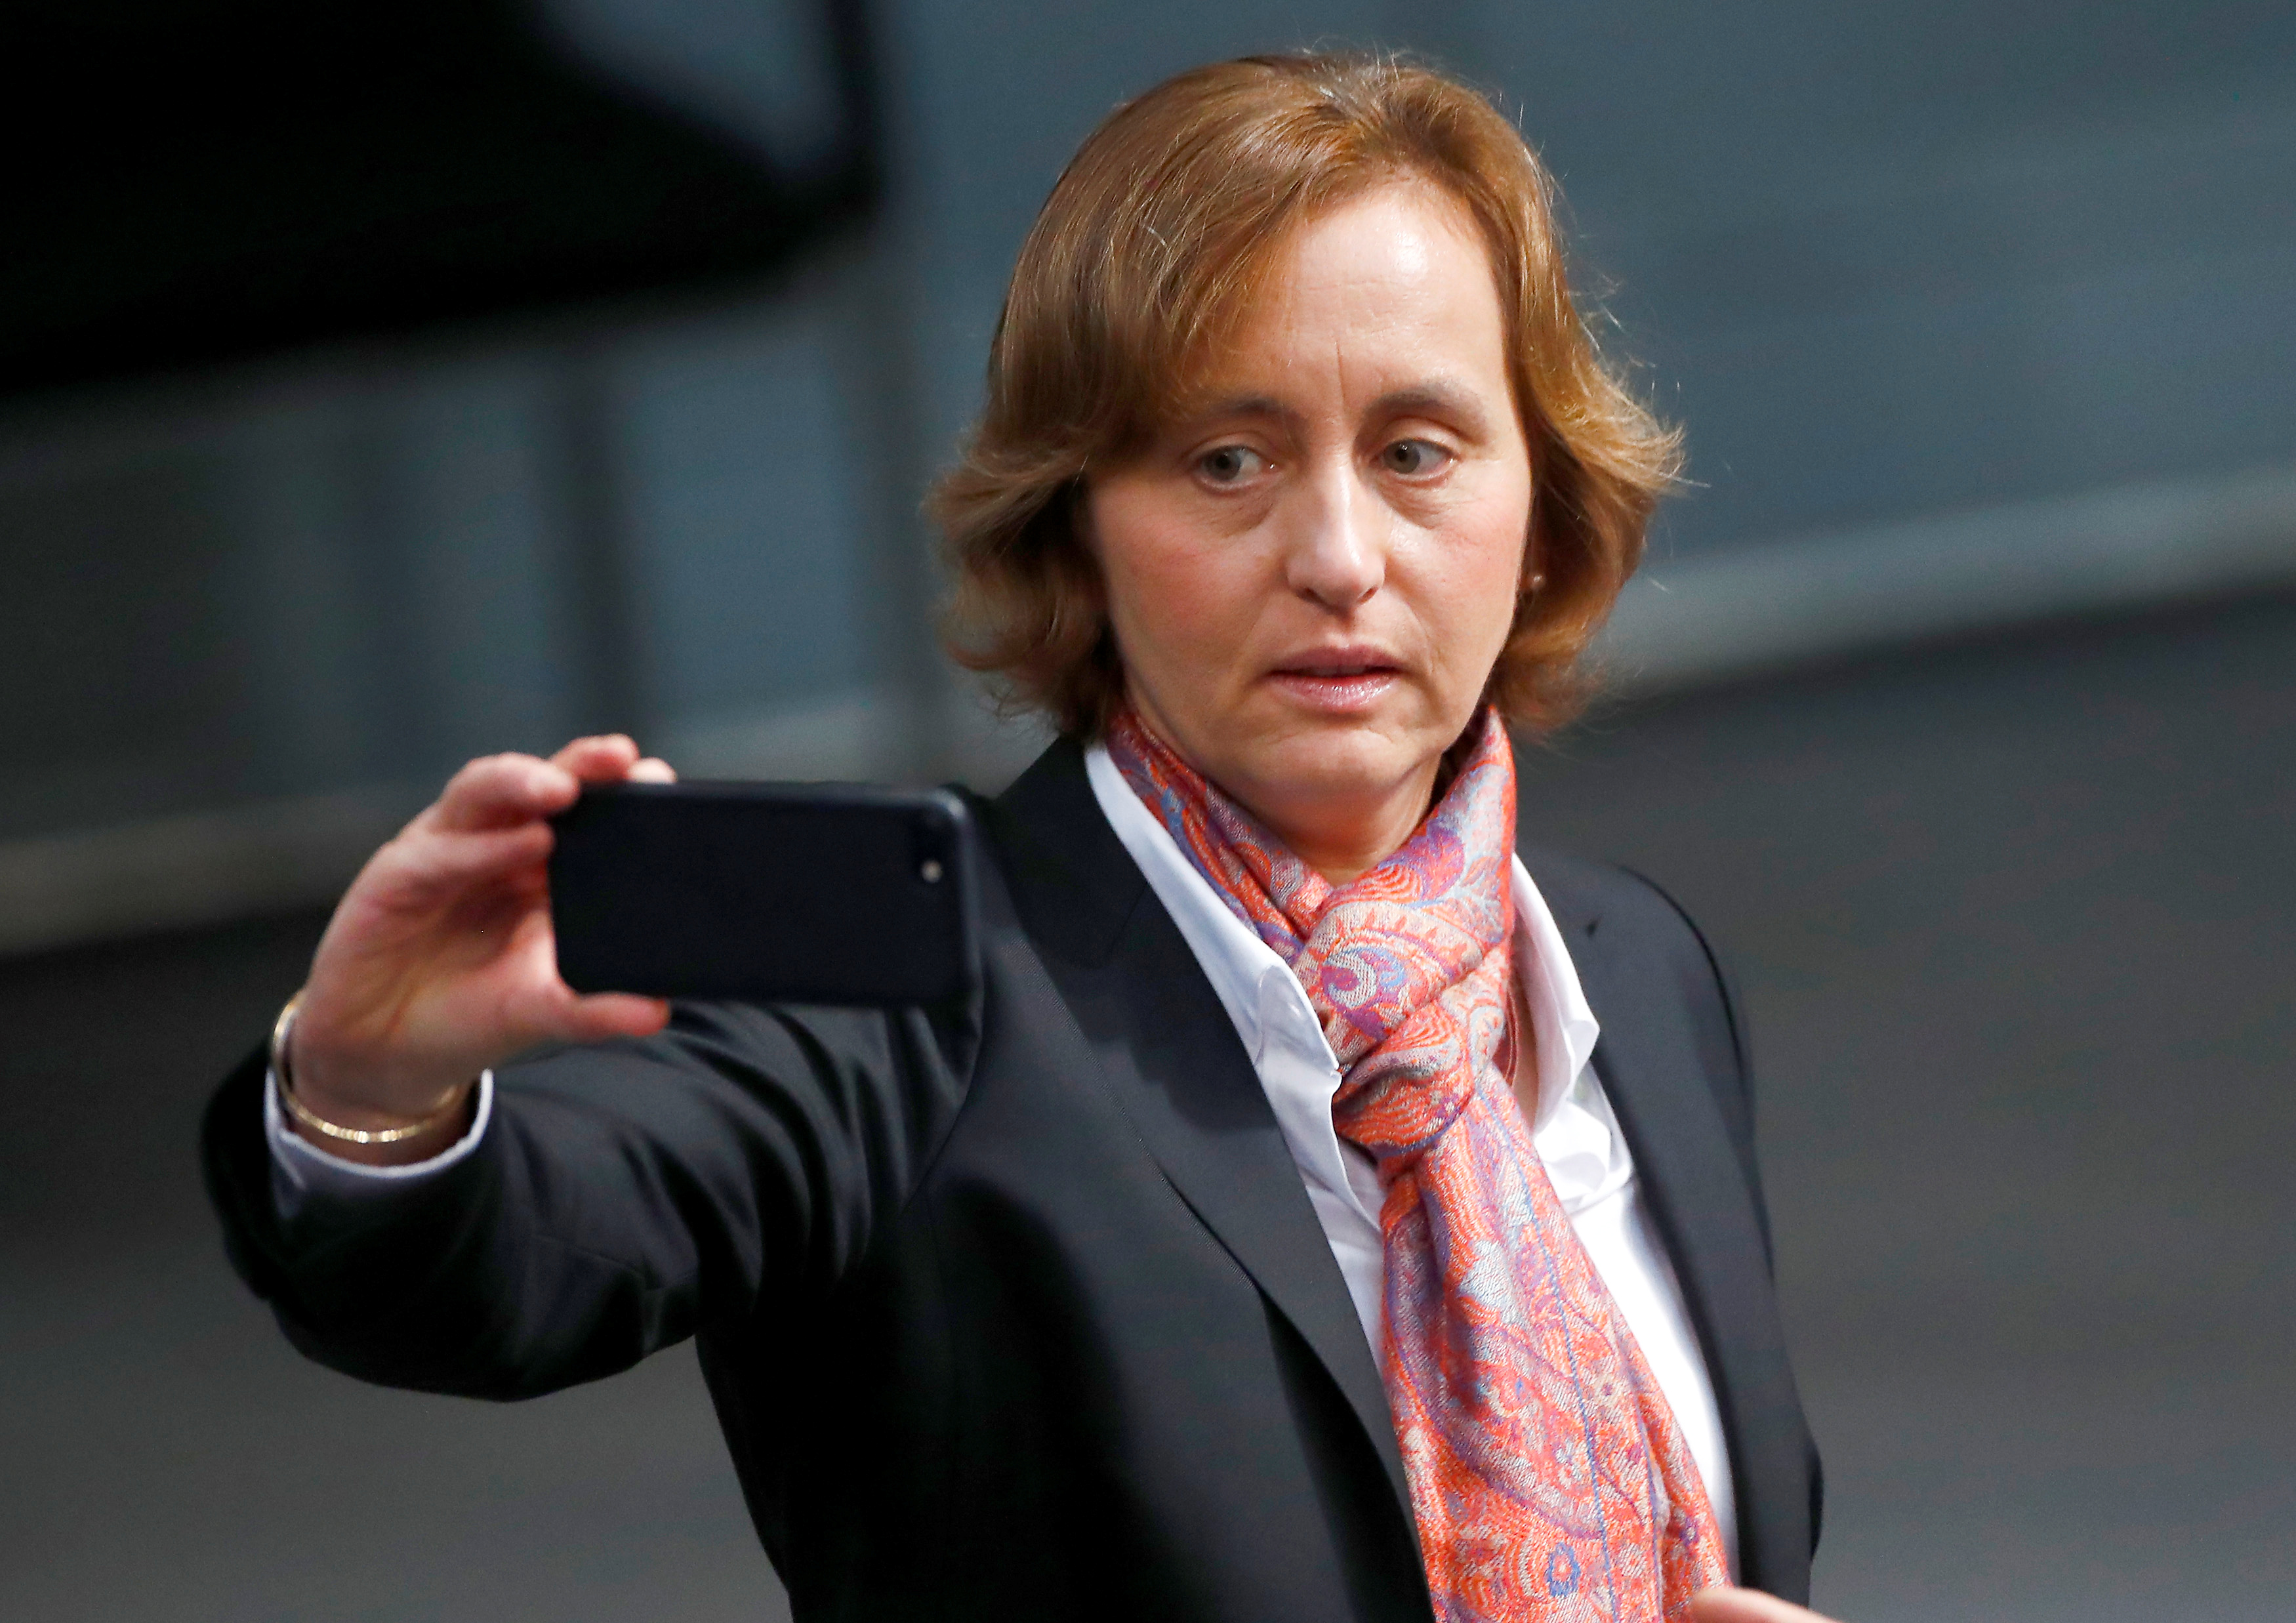 """FILE PHOTO: Co-leader of the anti-immigration party Alternative for Germany (AfD) Beatrix von Storch arrives at the German lower house of Parliament, Bundestag,  in Berlin, Germany, October 24, 2017. German police have asked prosecutors to investigate a far-right lawmaker for possible incitement to hatred after she criticised a police force for tweeting in Arabic """"to appease the barbaric, Muslim, rapist hoards of men"""".REUTERS/Hannibal Hanschke/File Photo - RC1F131D3CE0"""